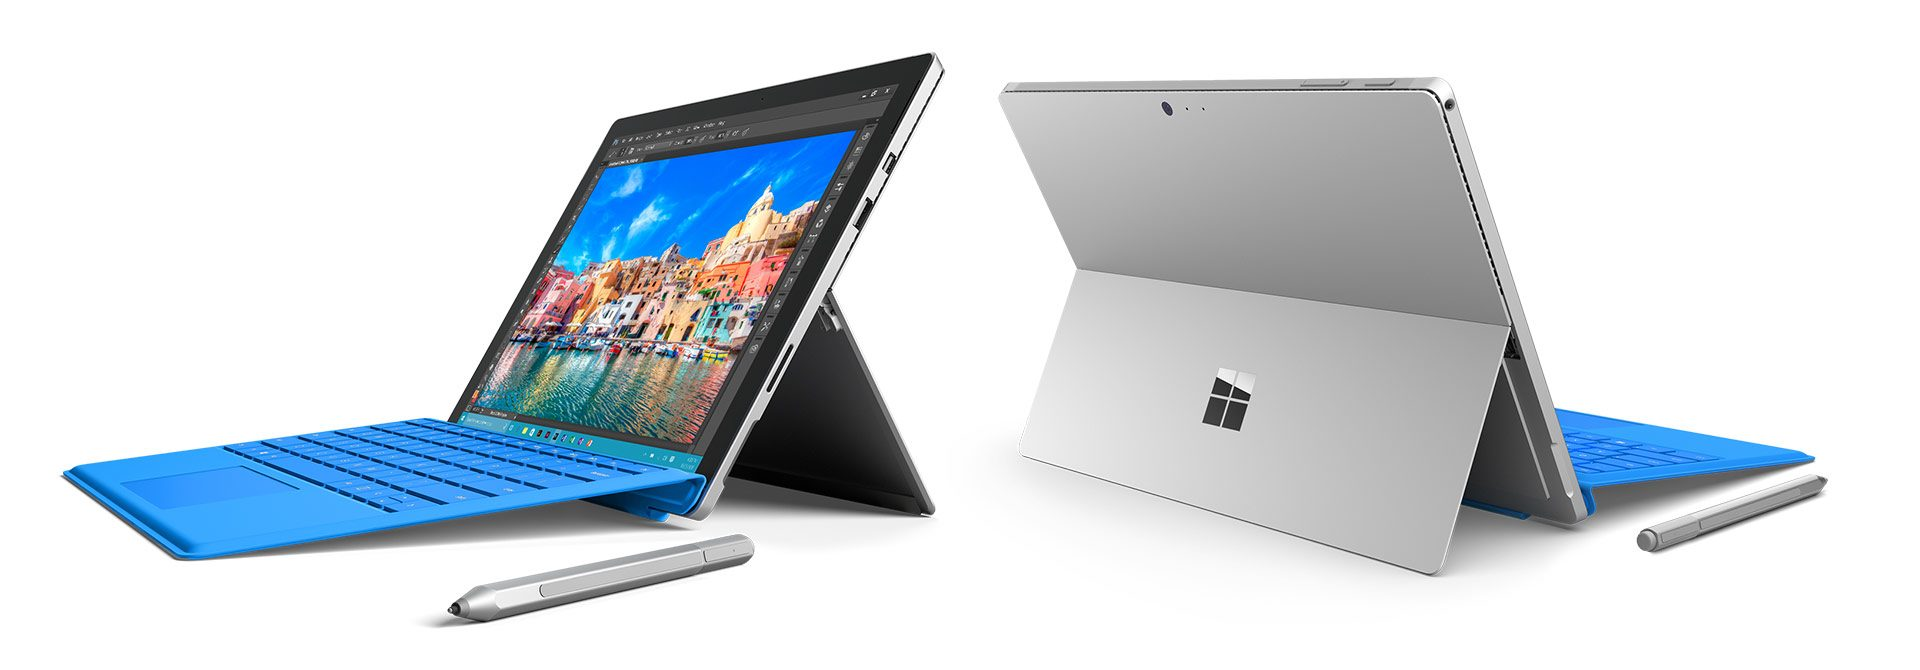 The Surface Pro 4 excels as a tablet, but isn't quite the laptop Microsoft claims it can be